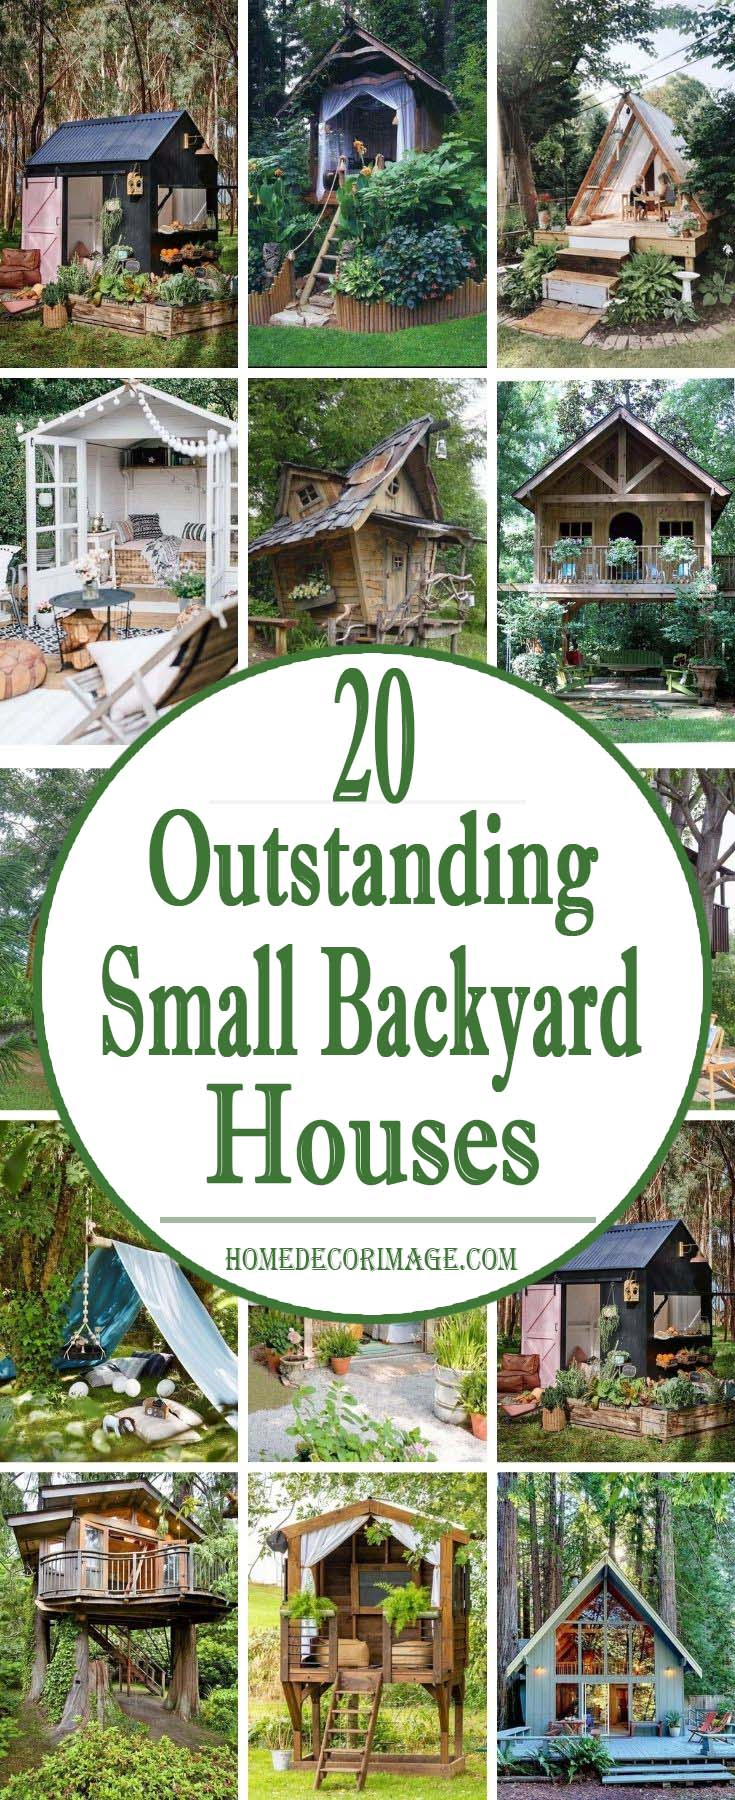 20 Outstanding Small Backyard Houses To Freshen Up The Space